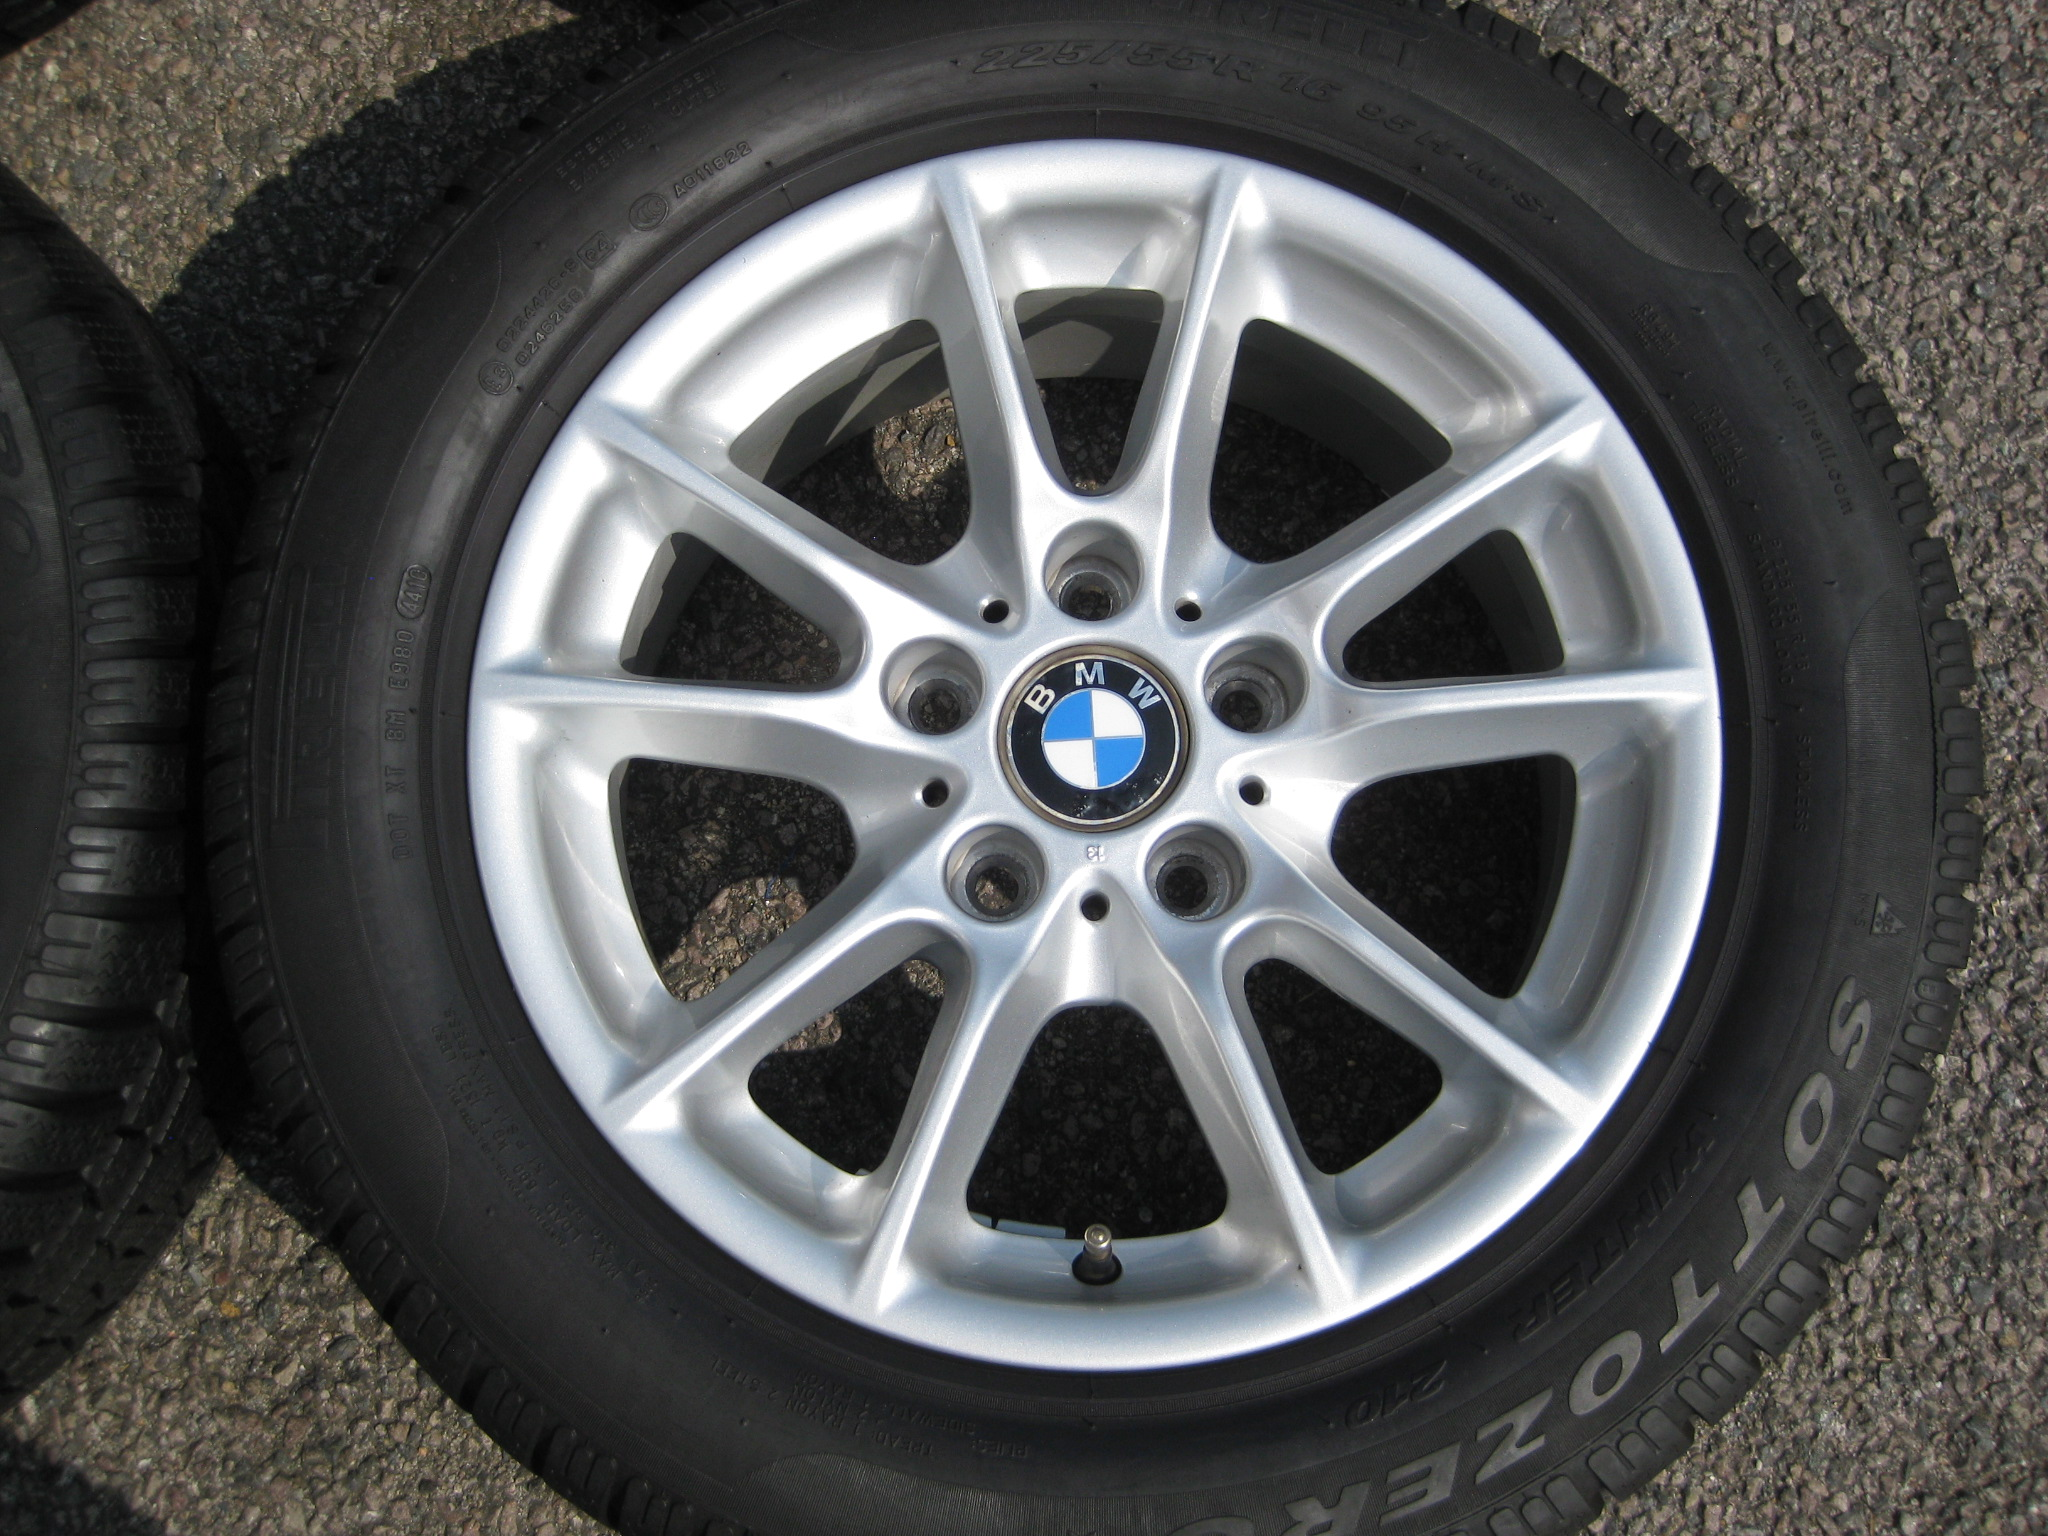 "USED 16"" GENUINE STYLE 50 RADIAL SPOKE ALLOYS,GC INC. WINTER TYRES, IDEAL METRIC REPLACEMENT"